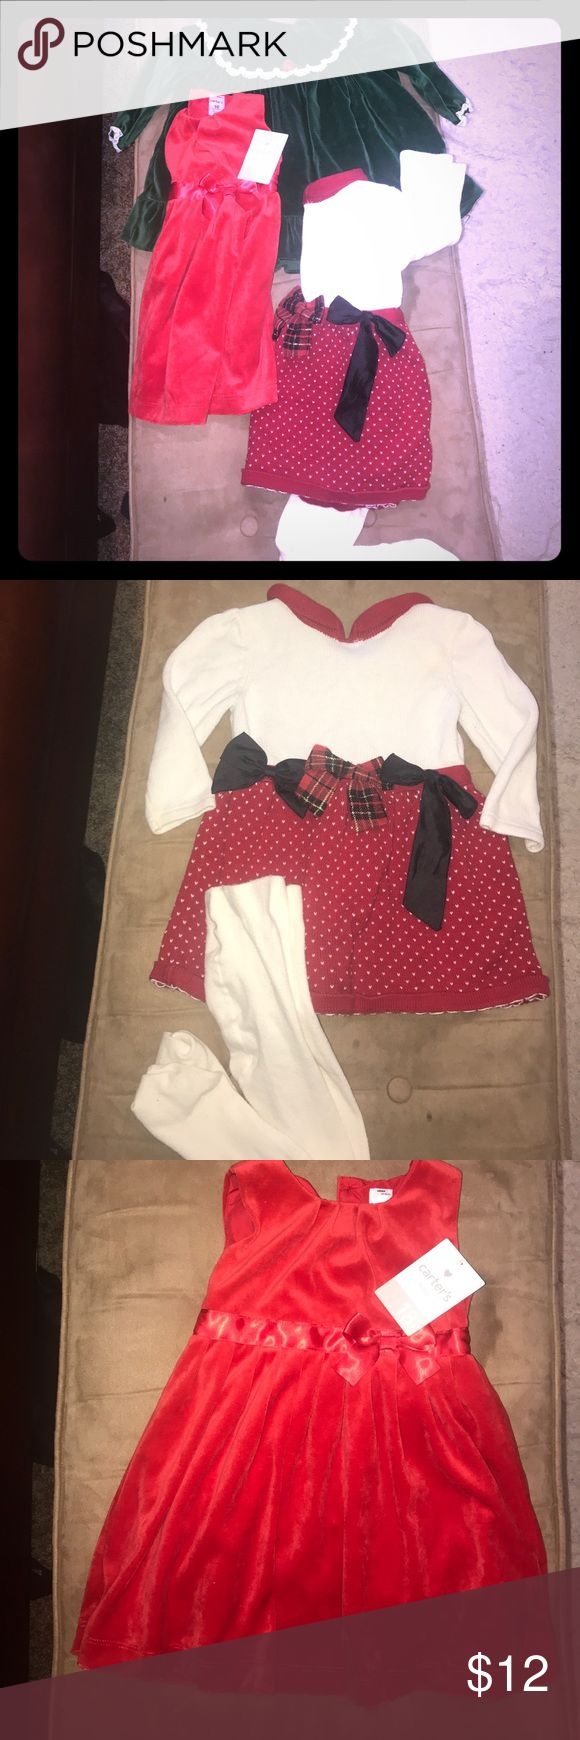 3 Piece Baby Girl Holiday Dress Bndl. Sz 18-24m! Bundle of 3 baby girl holiday party dresses. Red dress new with Carters tag attaches, the green dress is vintage, and the red/white Sweater dress comes with matching tights. All in excellent condition! Carter's Dresses